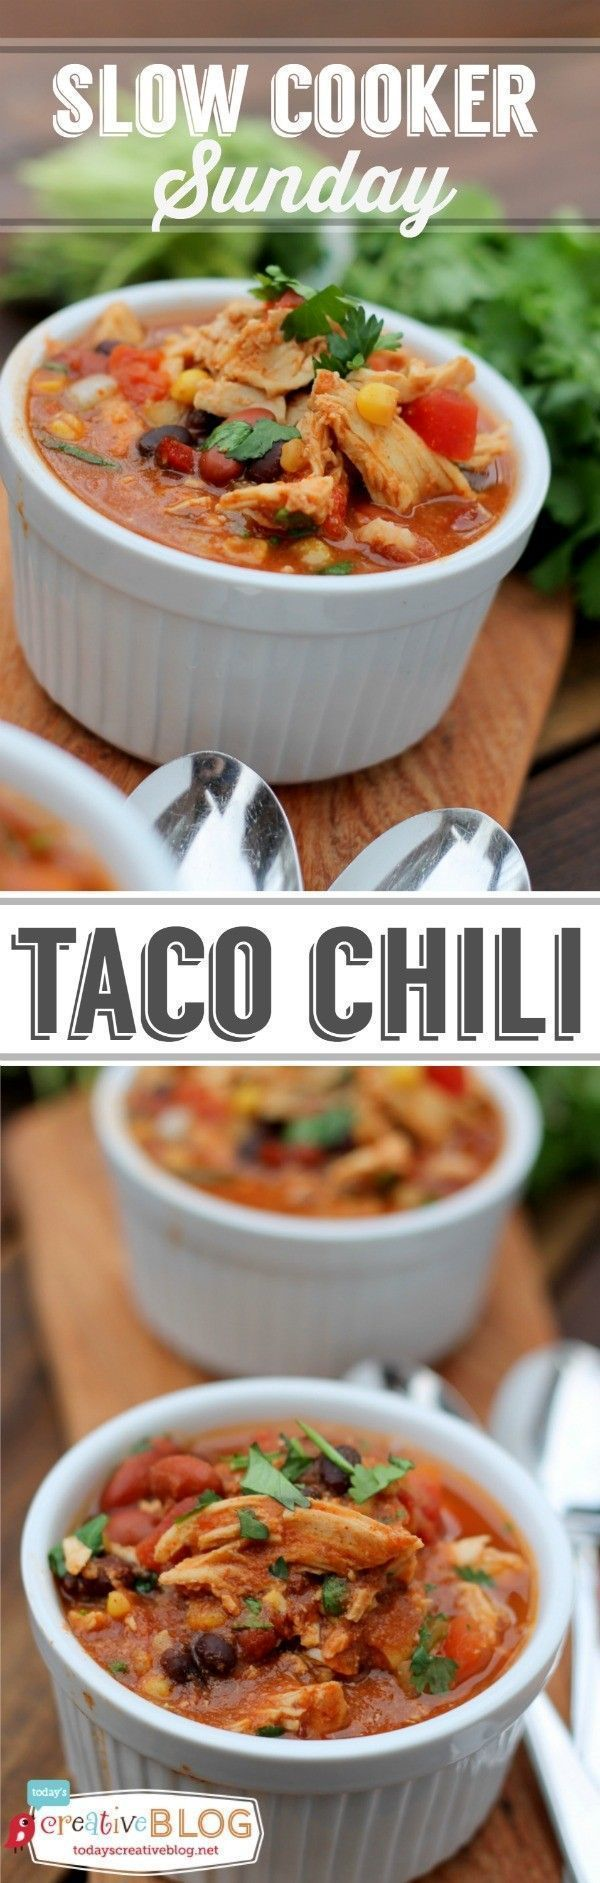 Slow Cooker Taco Chili Recipe | This Crock Pot chili will be a family favorite! Great for fall and winter, great for game days or after spending the afternoon at the soccer field. Easy Slow Cooker Meals  http://TodaysCreativeLife.com